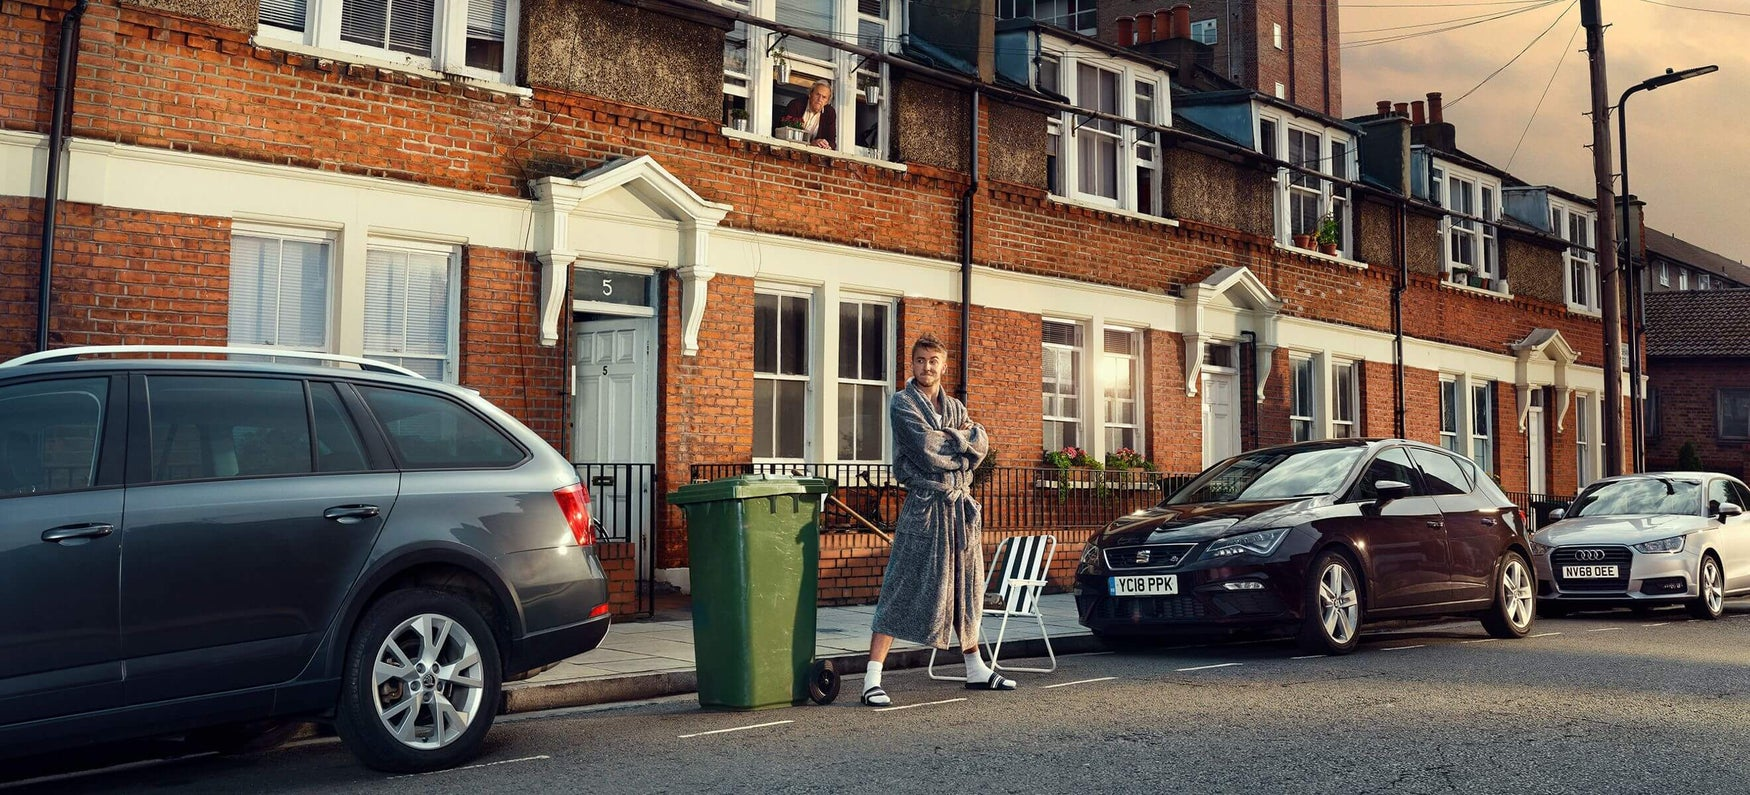 A man reserving a kerbside parking space by standing on it